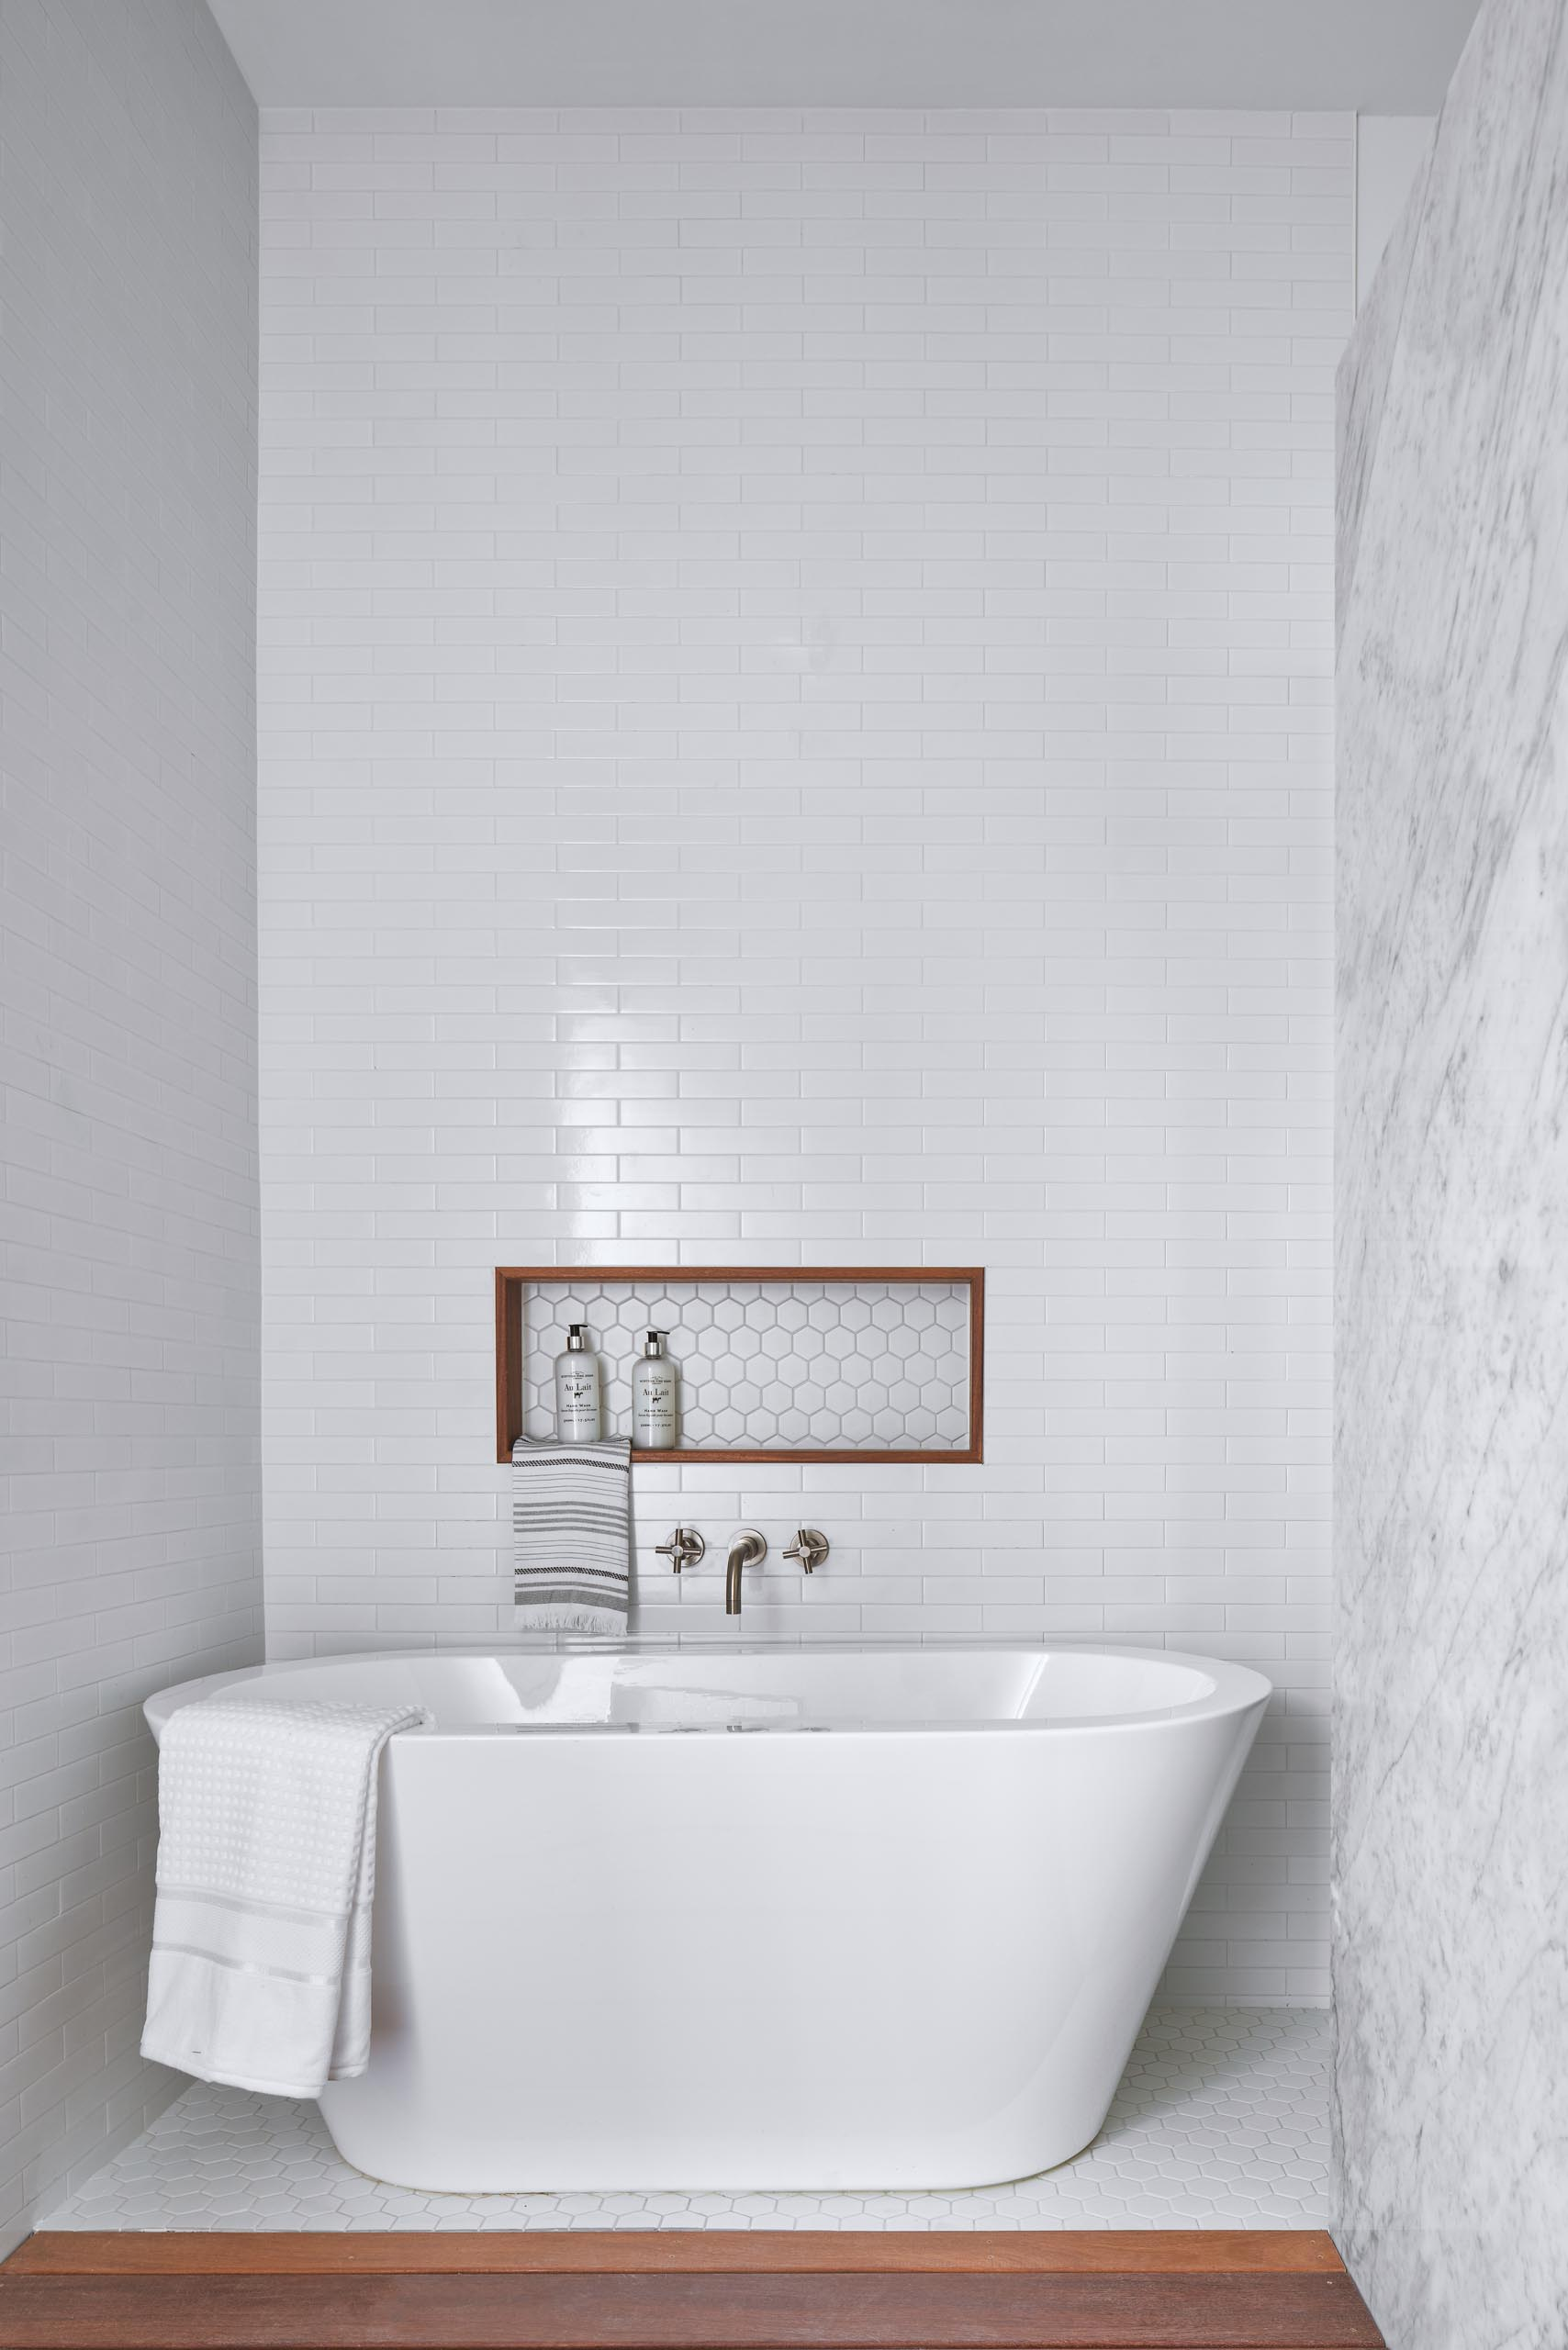 A white bathroom with a freestanding bathtub and shelving niche.